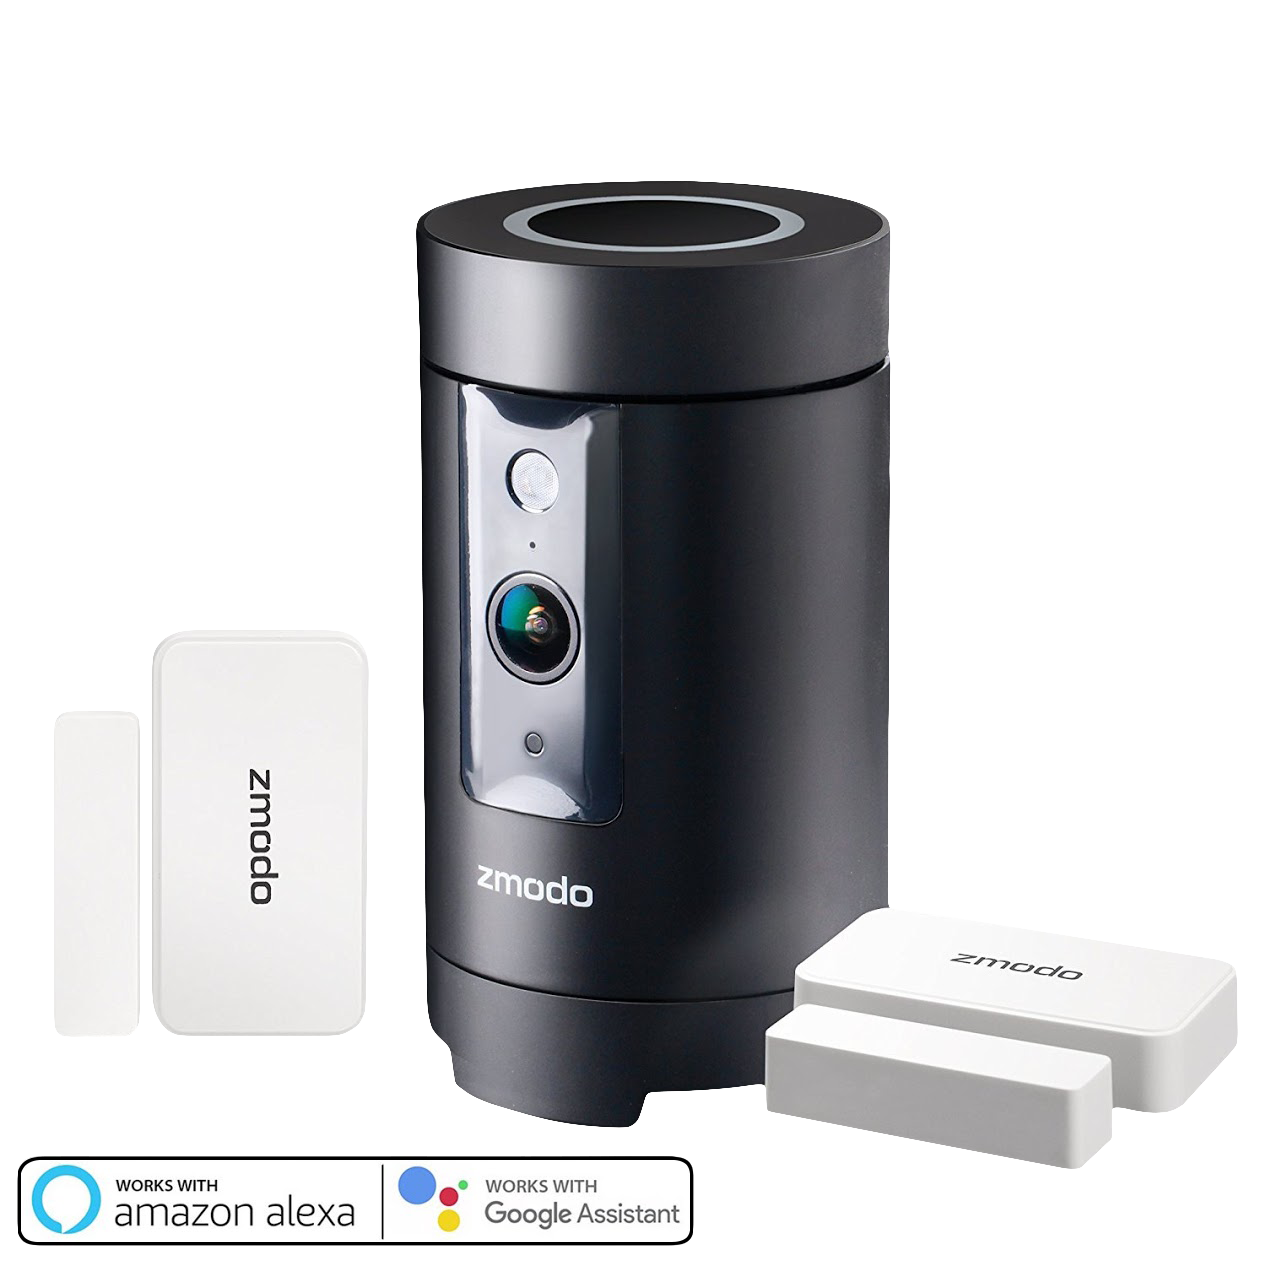 Zmodo Pivot 1080p 360° WiFi Camera with Smarthub and Window